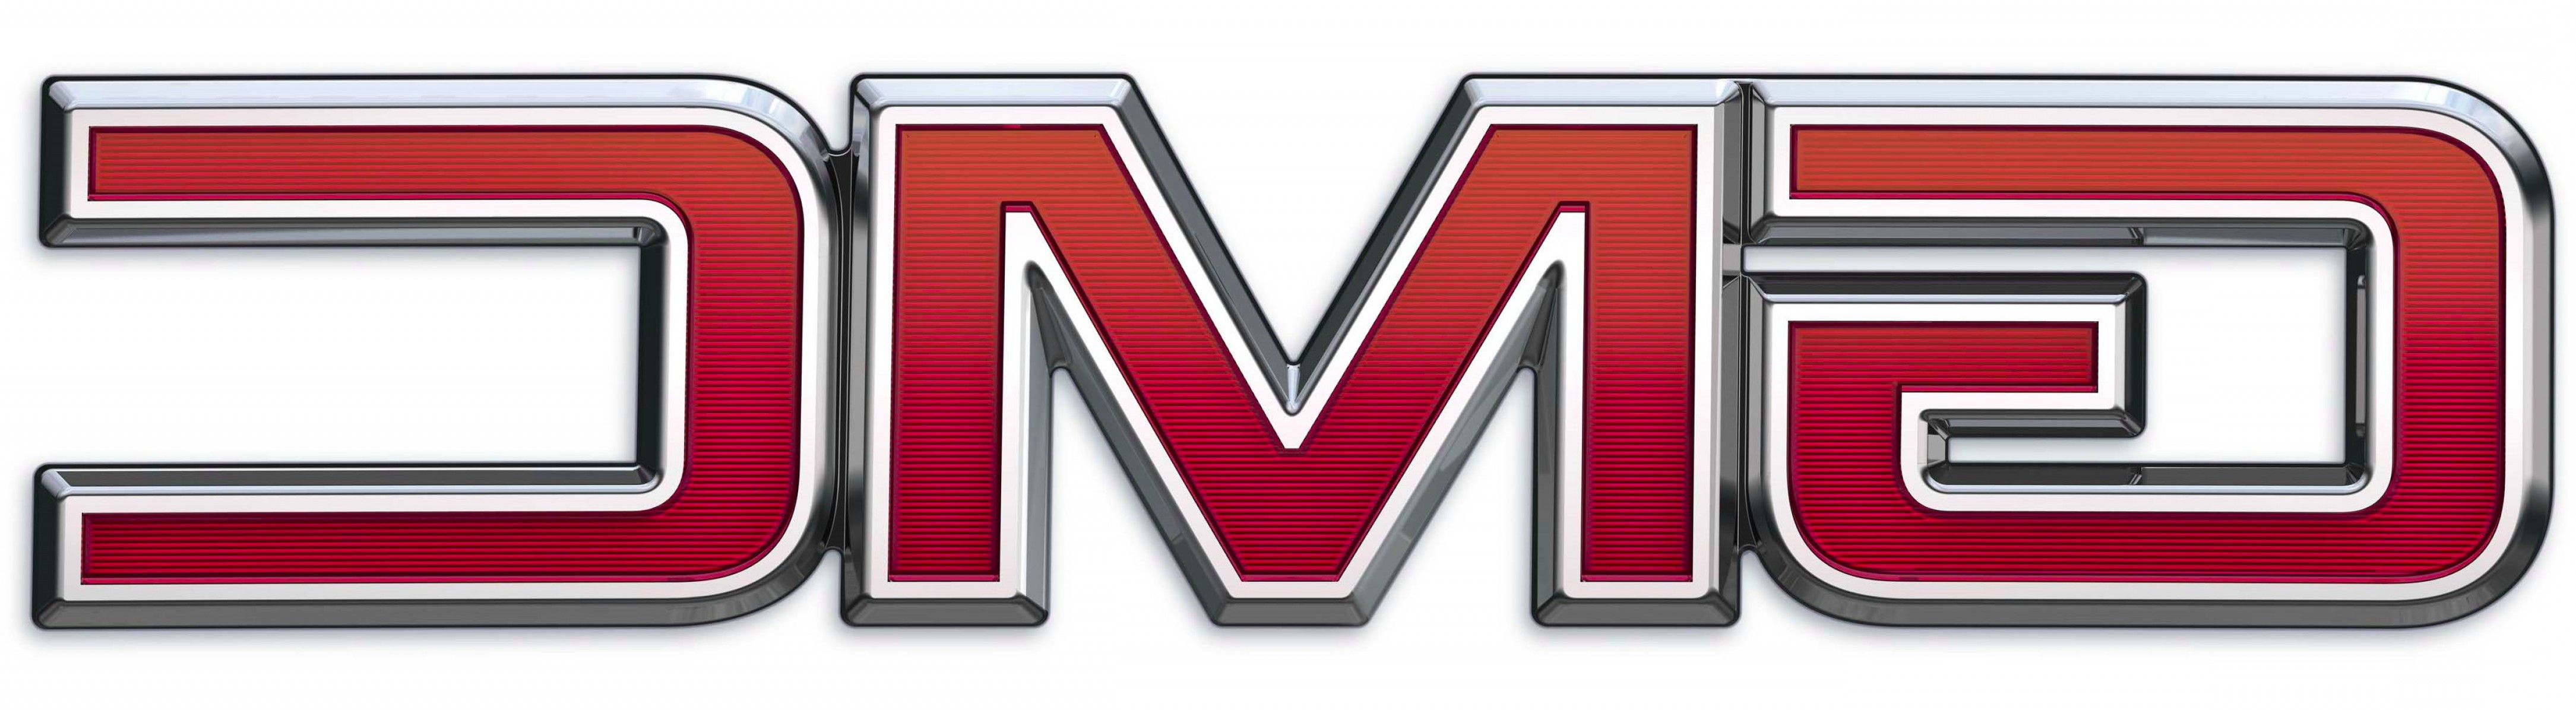 GM Logo Vector: Gmc Logo Hd Png And Vector Download